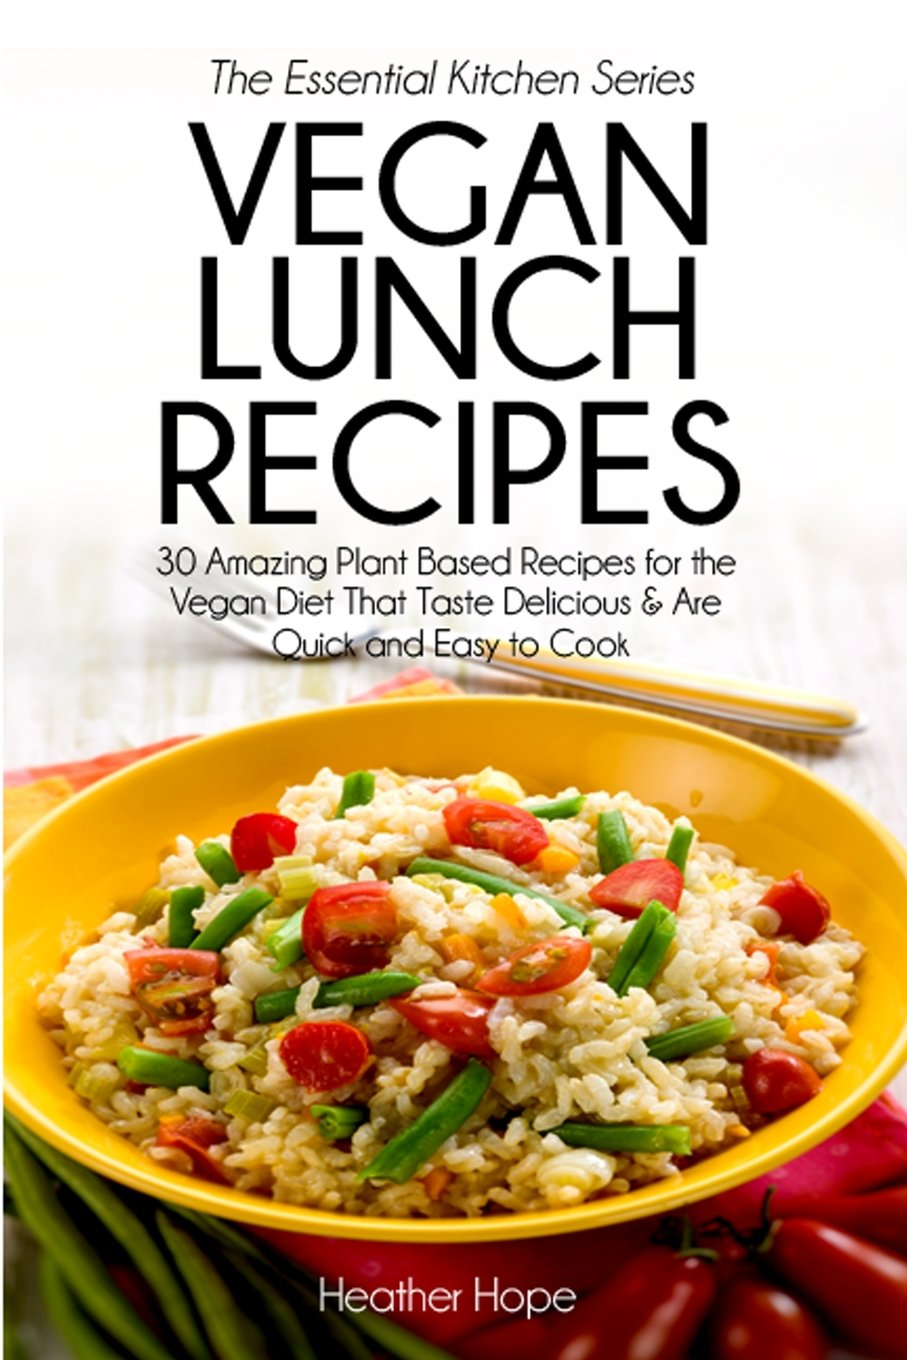 Read Online Vegan Lunch Recipes: 30 Amazing Plant Based Recipes for the Vegan Diet That Taste Delicious & Are Quick & Easy to Cook (The Essential Kitchen Series) (Volume 31) pdf epub